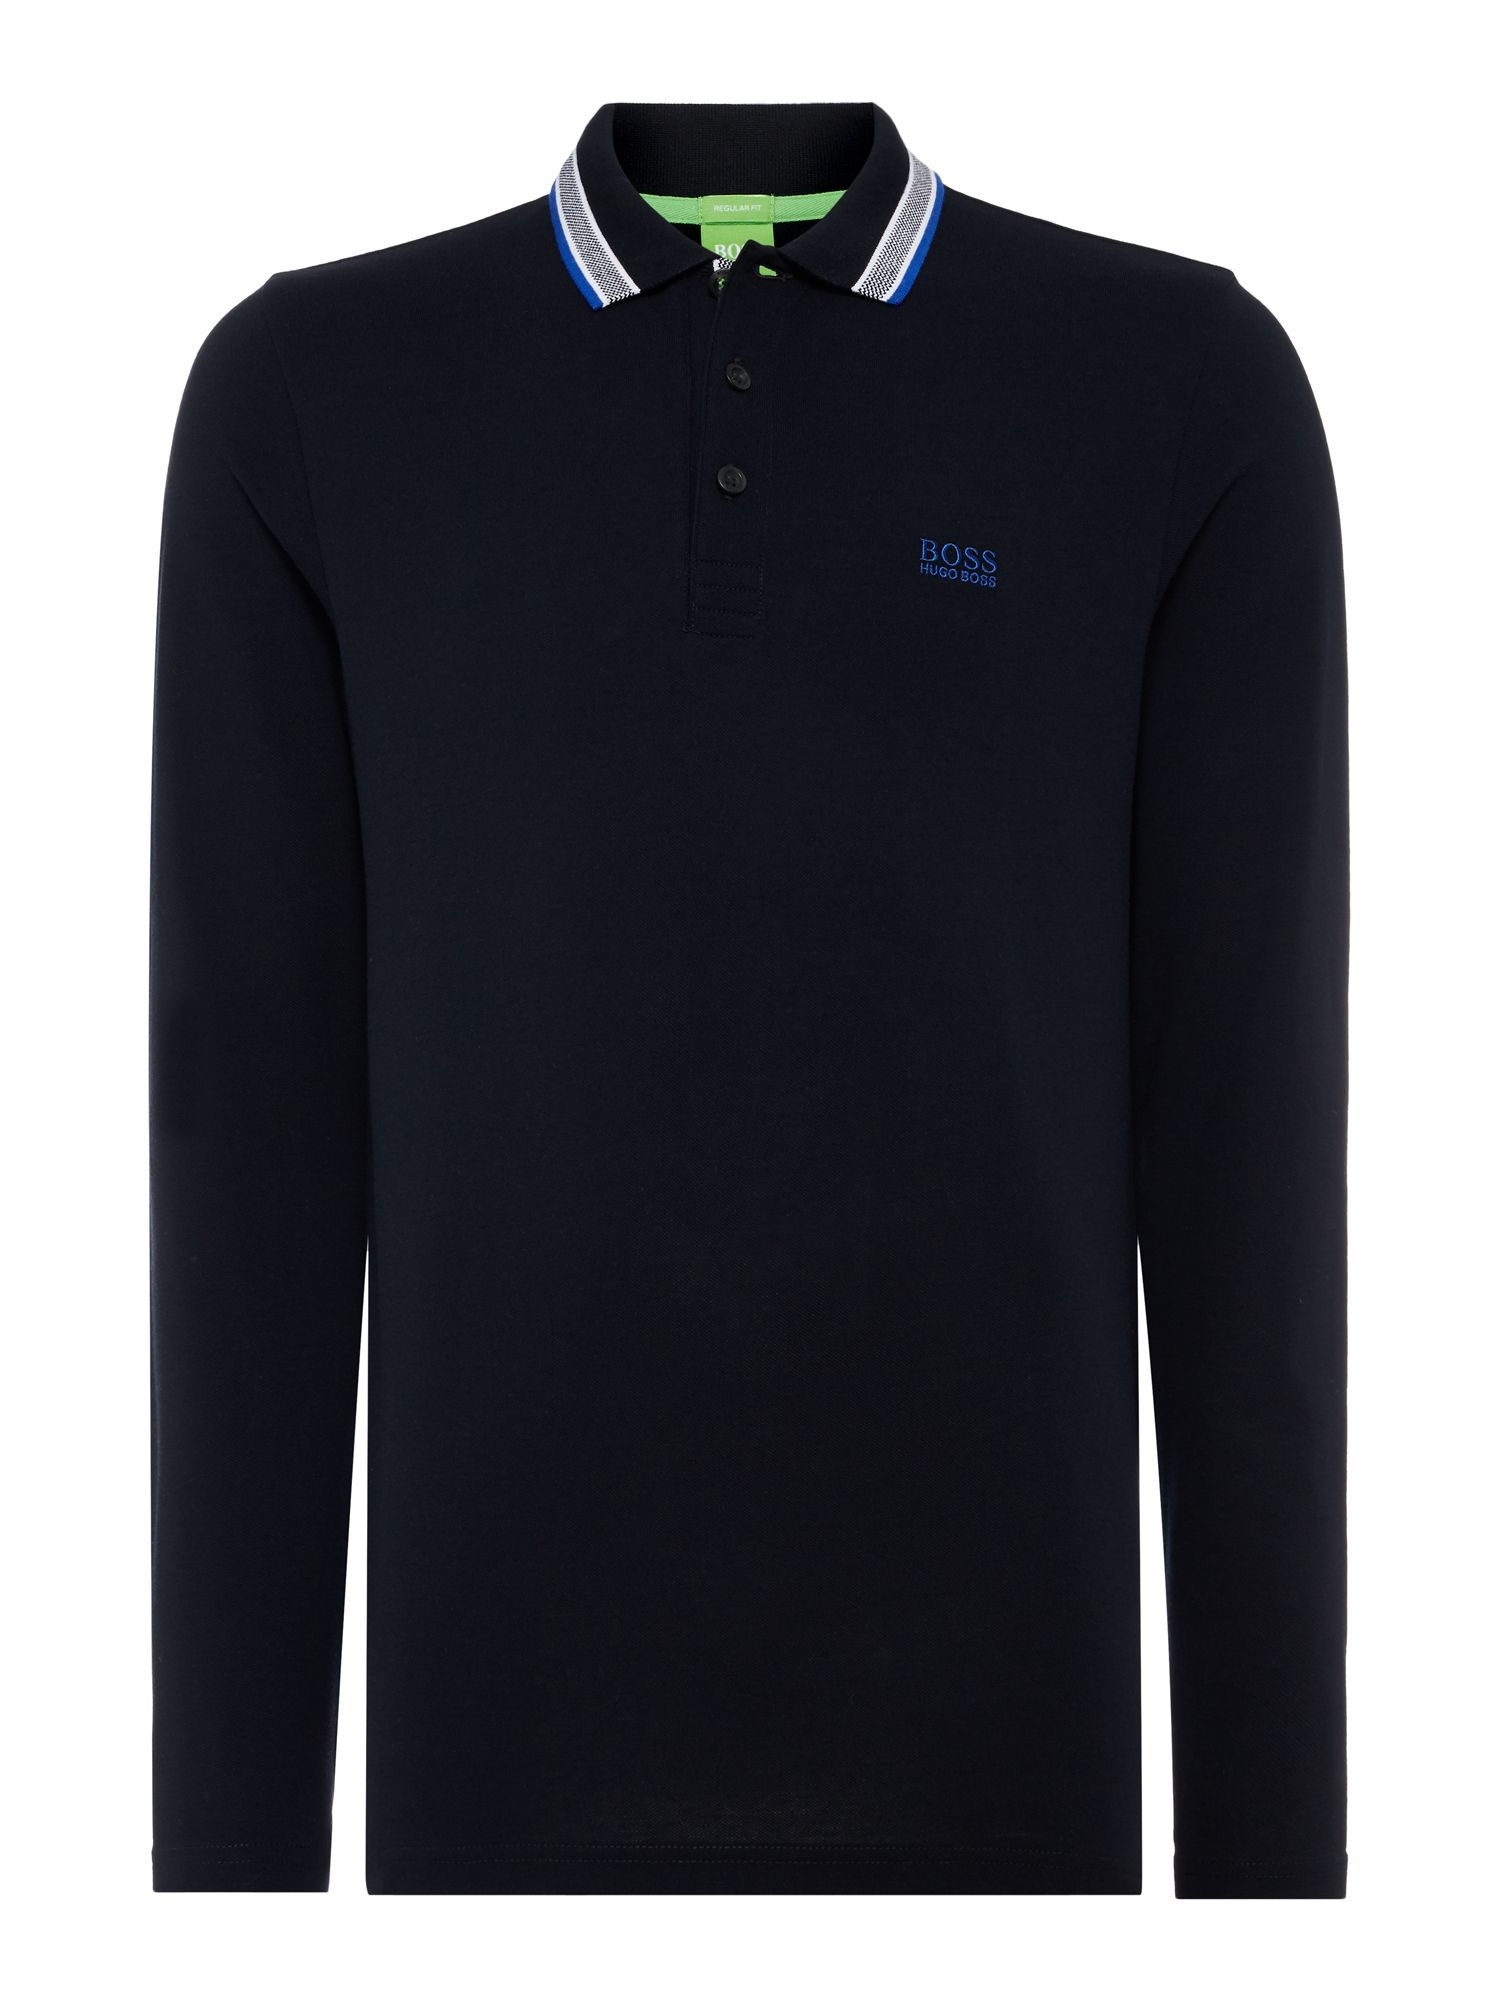 Men's Hugo Boss Oxford long sleeve polo, Black